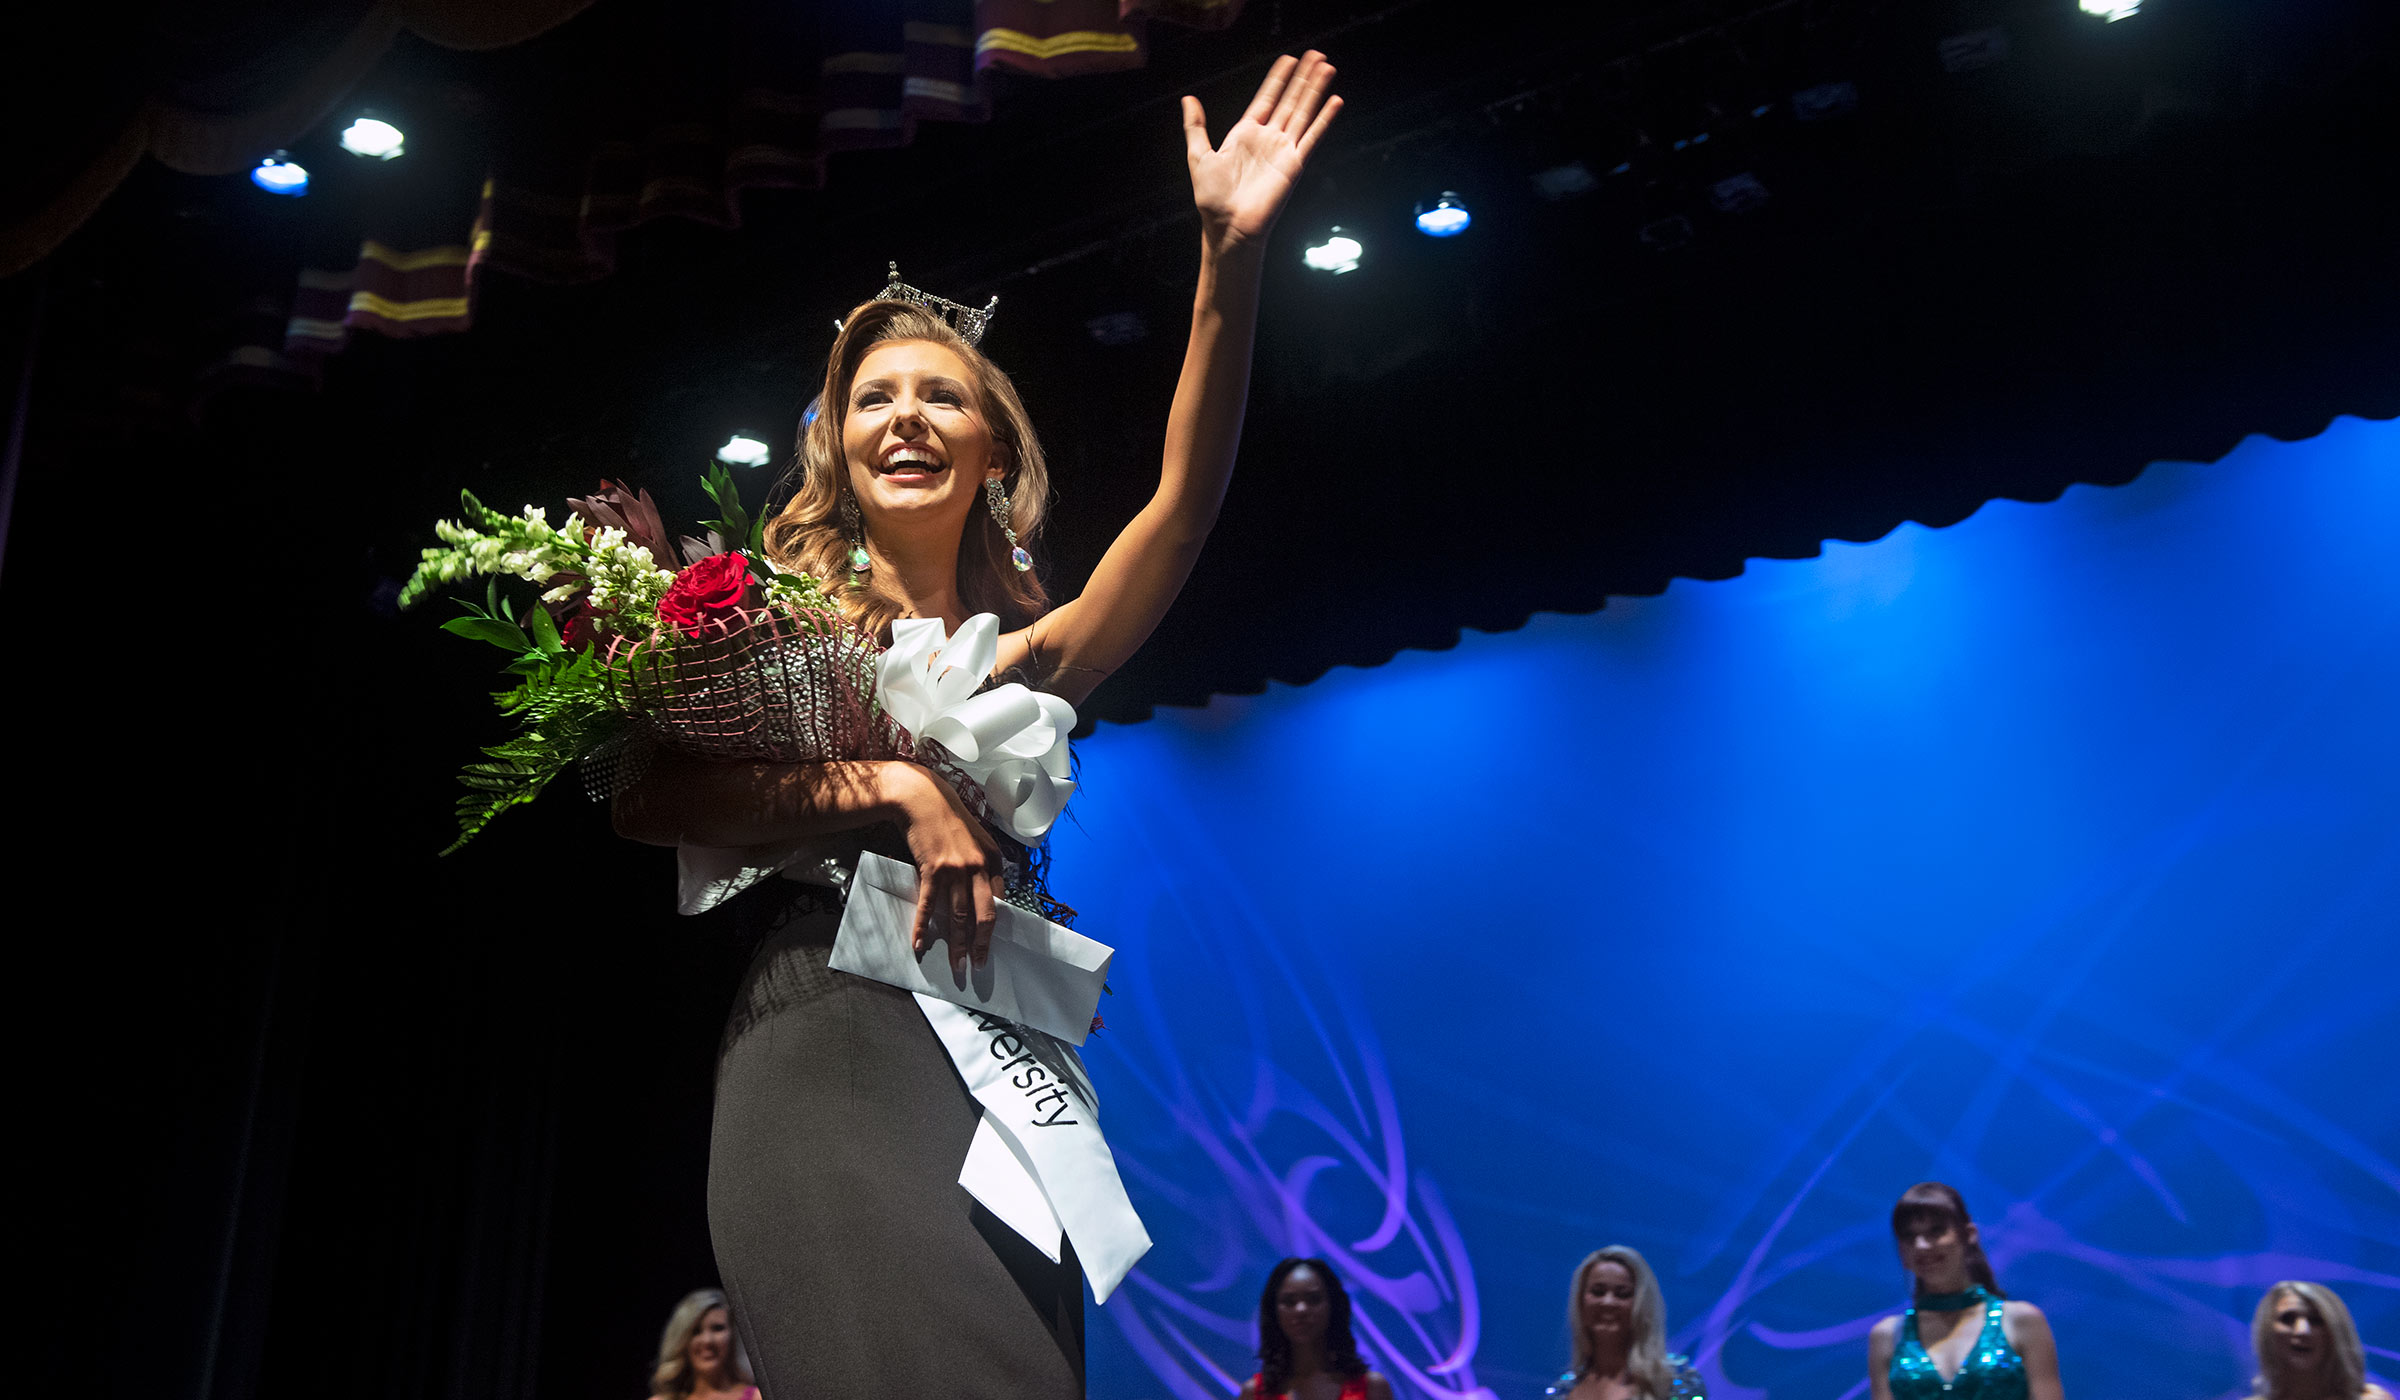 Female student in black evening gown with white sash, roses and crown waving at crowd from stage